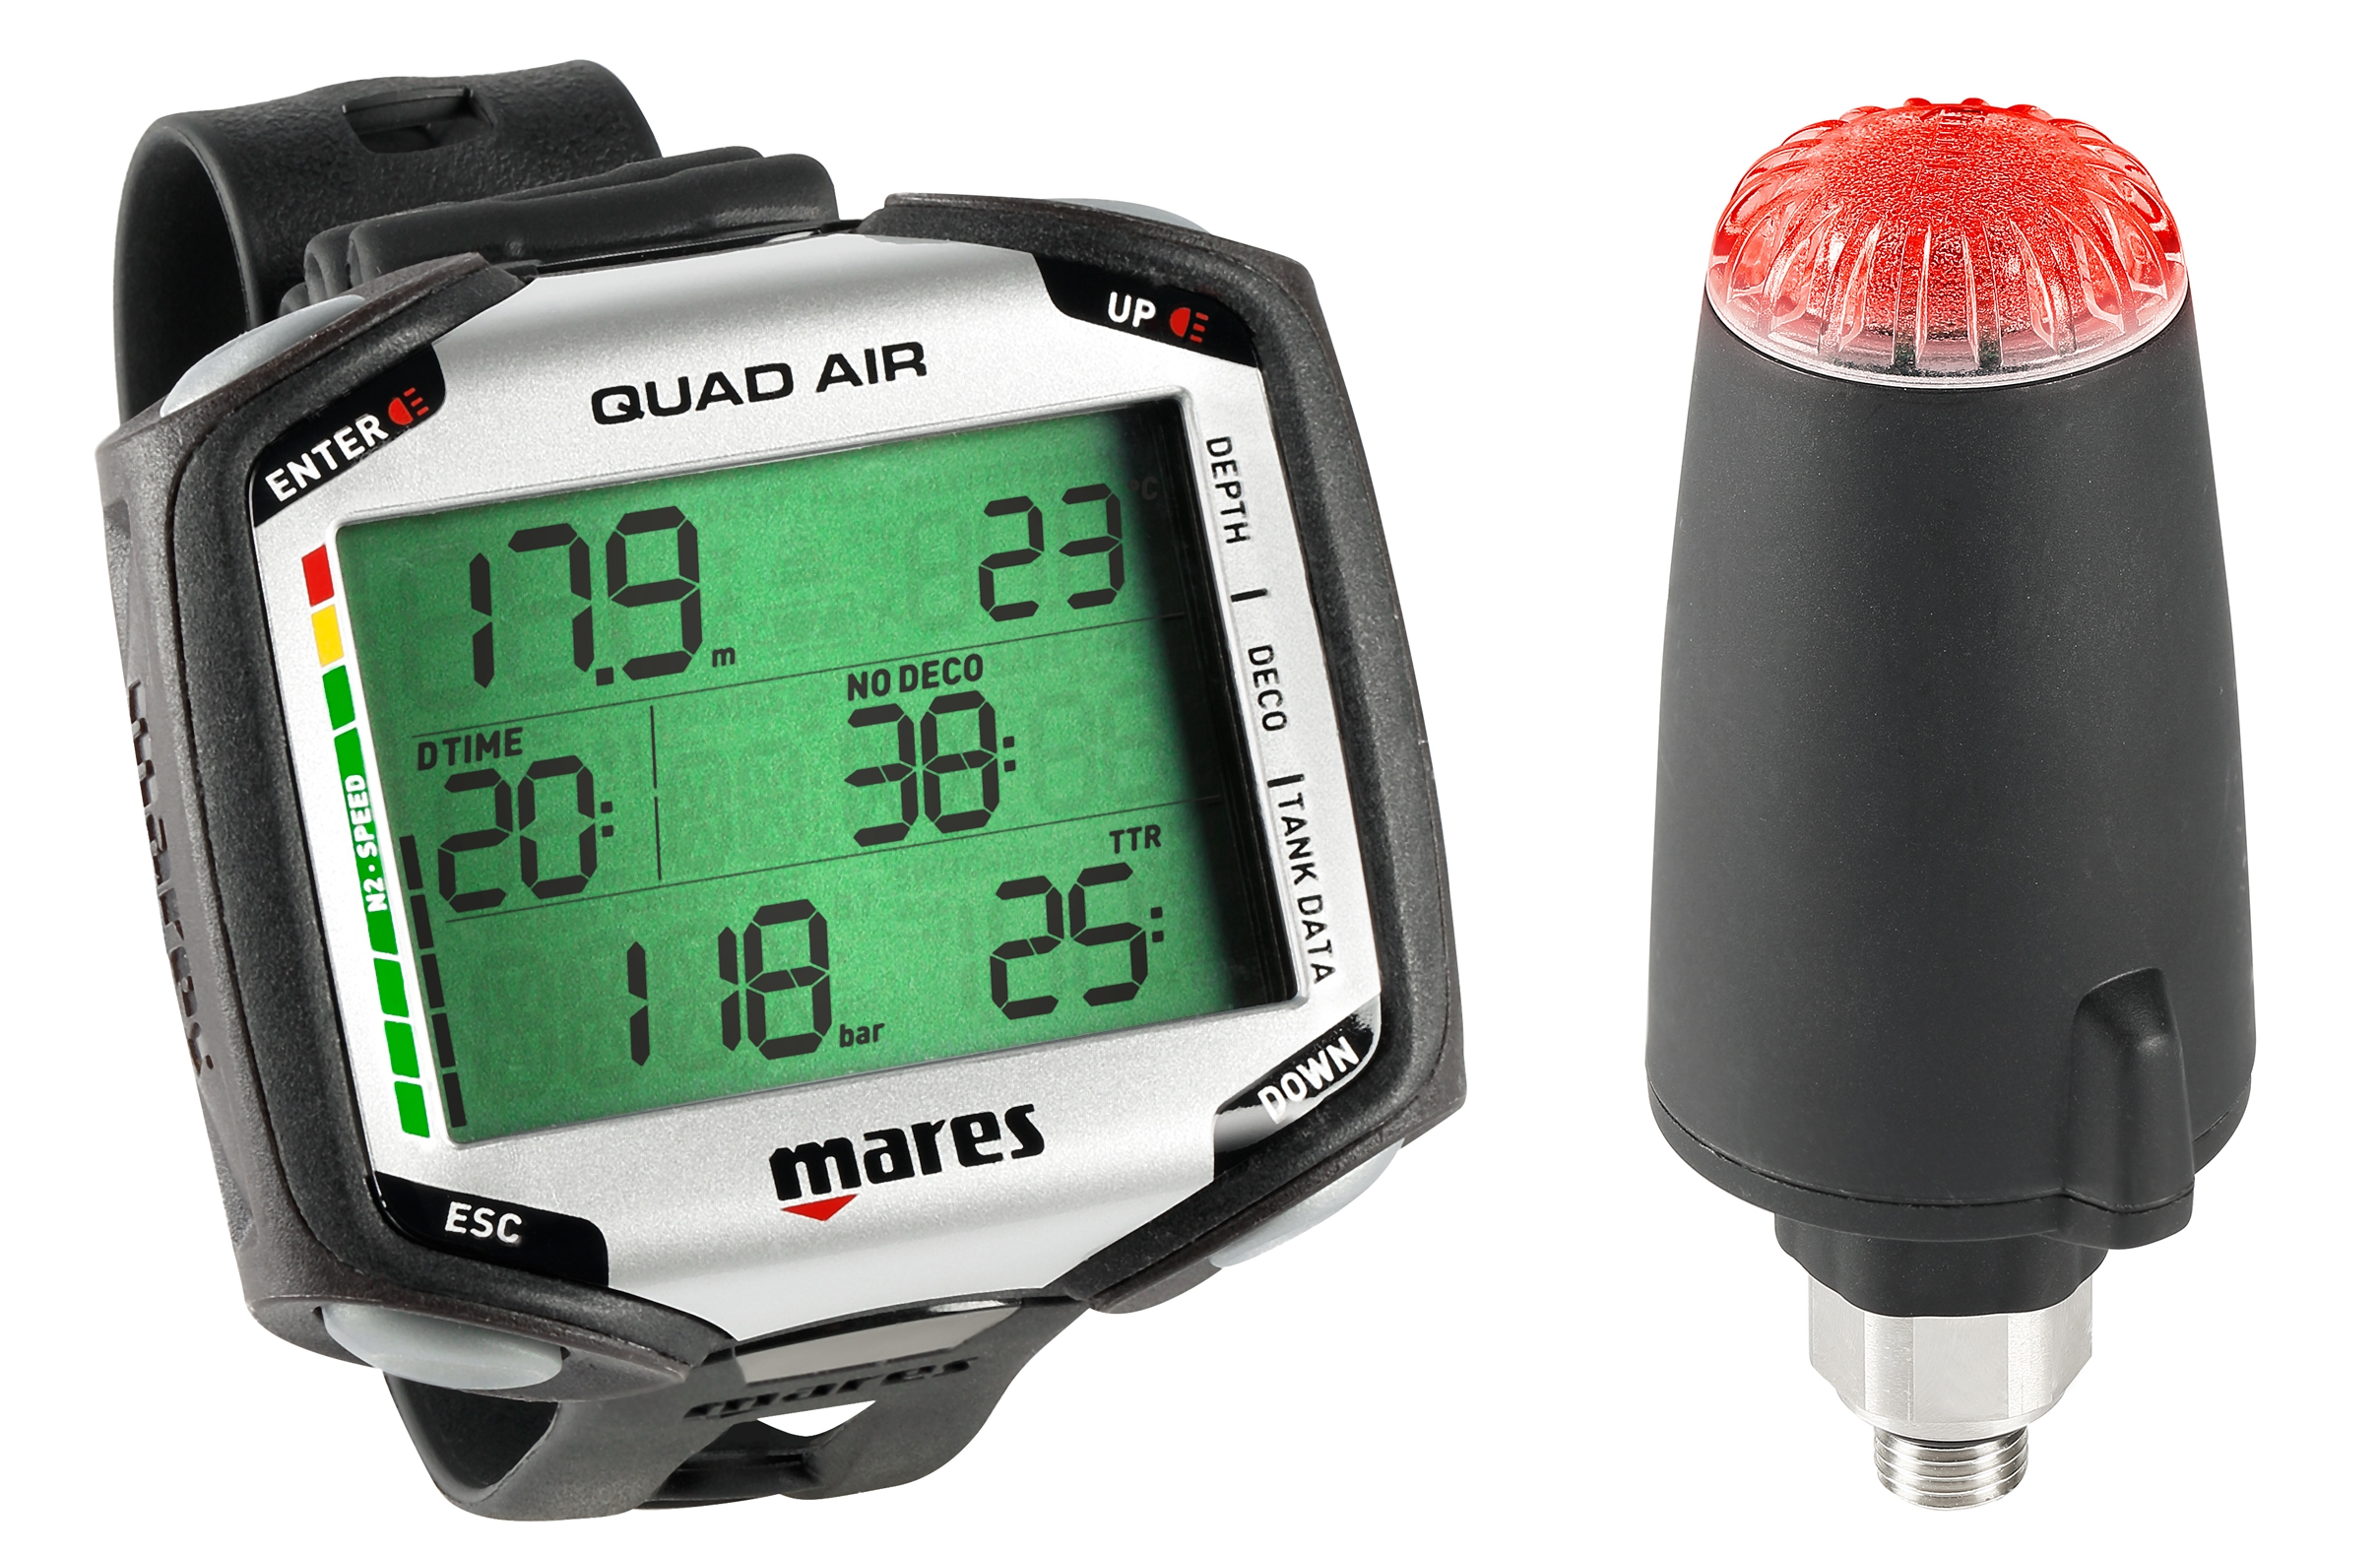 mares Quad Air mit Sender